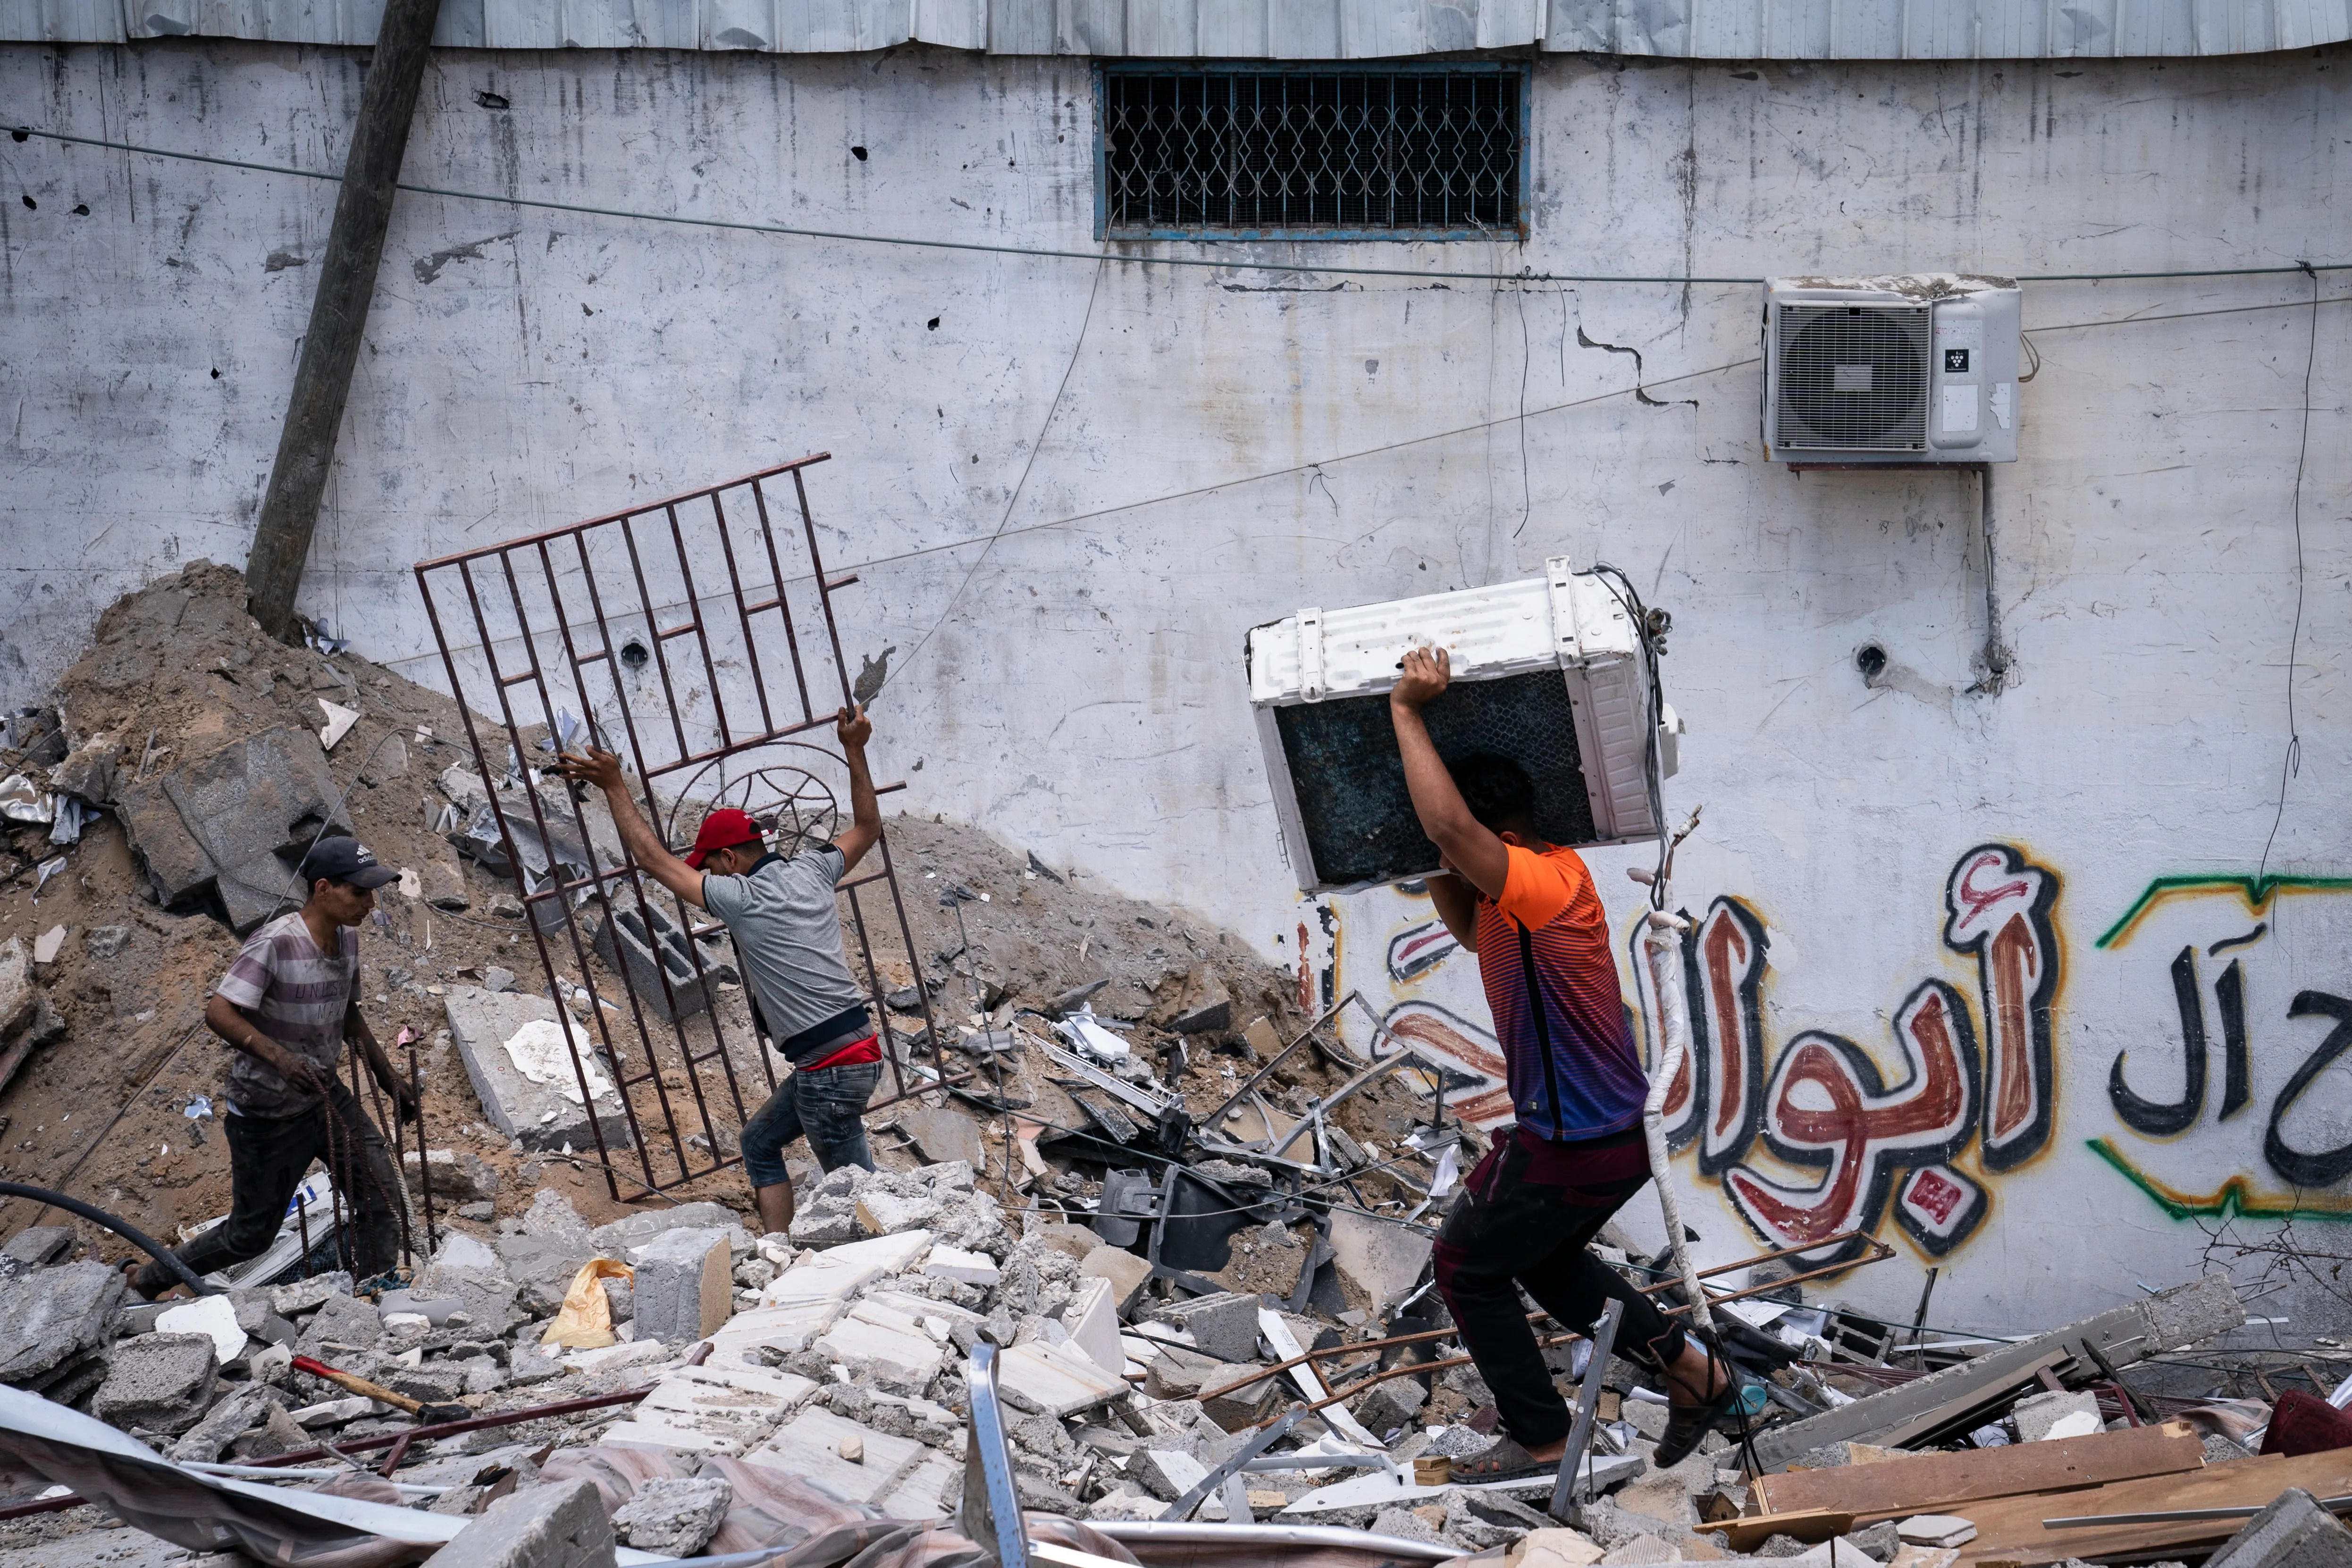 People reclaim valuable materials from a debris pile of a building destroyed by an airstrike prior to a cease-fire reached after an 11-day war between Gaza's Hamas rulers and Israel, in Gaza City, Saturday, May 22, 2021.